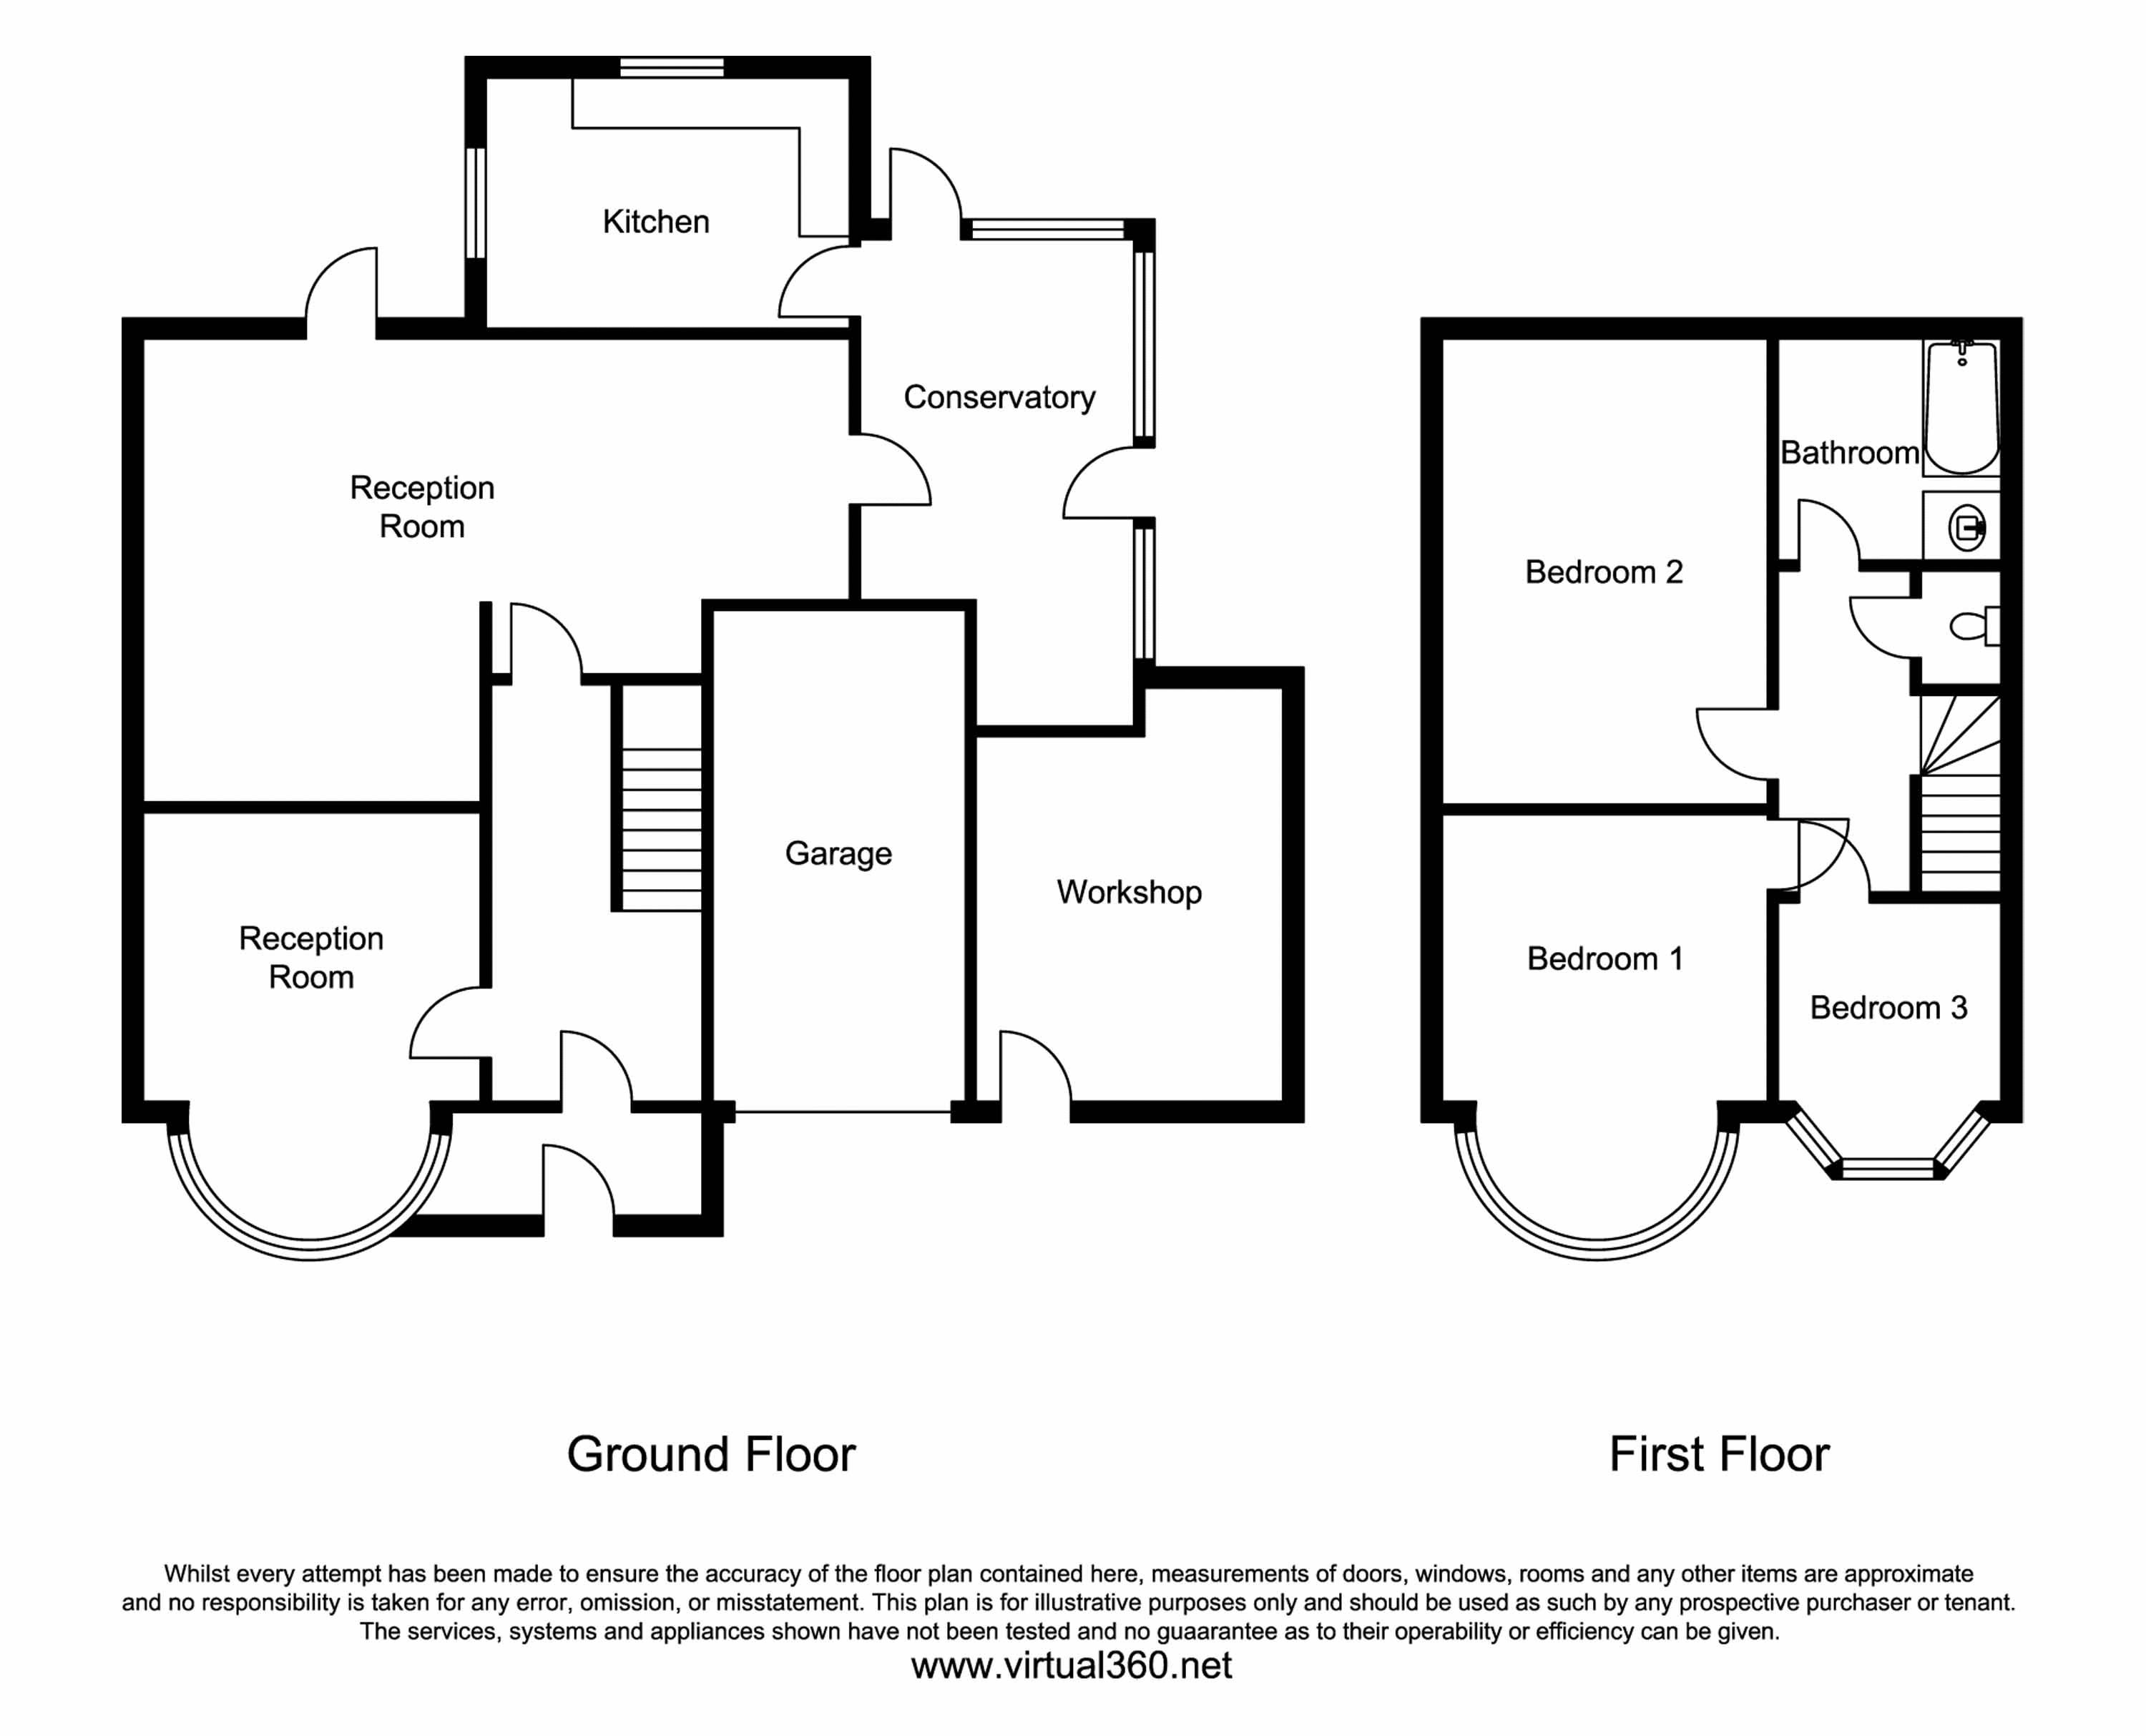 Yeading Avenue, Harrow floor plan